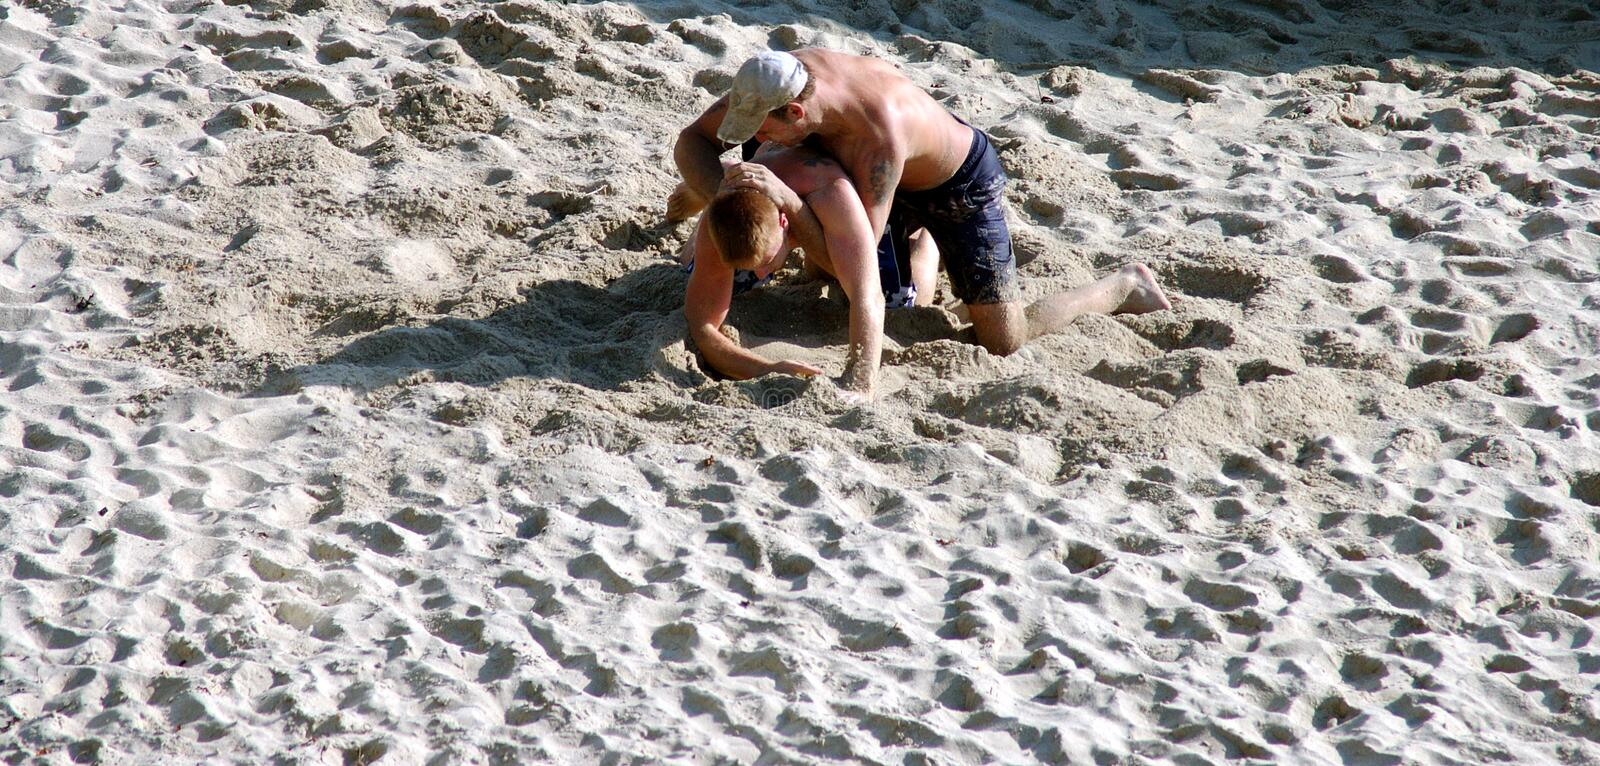 Sand Wrestlers. 2 men wrestling in the sand on a California beach stock photography